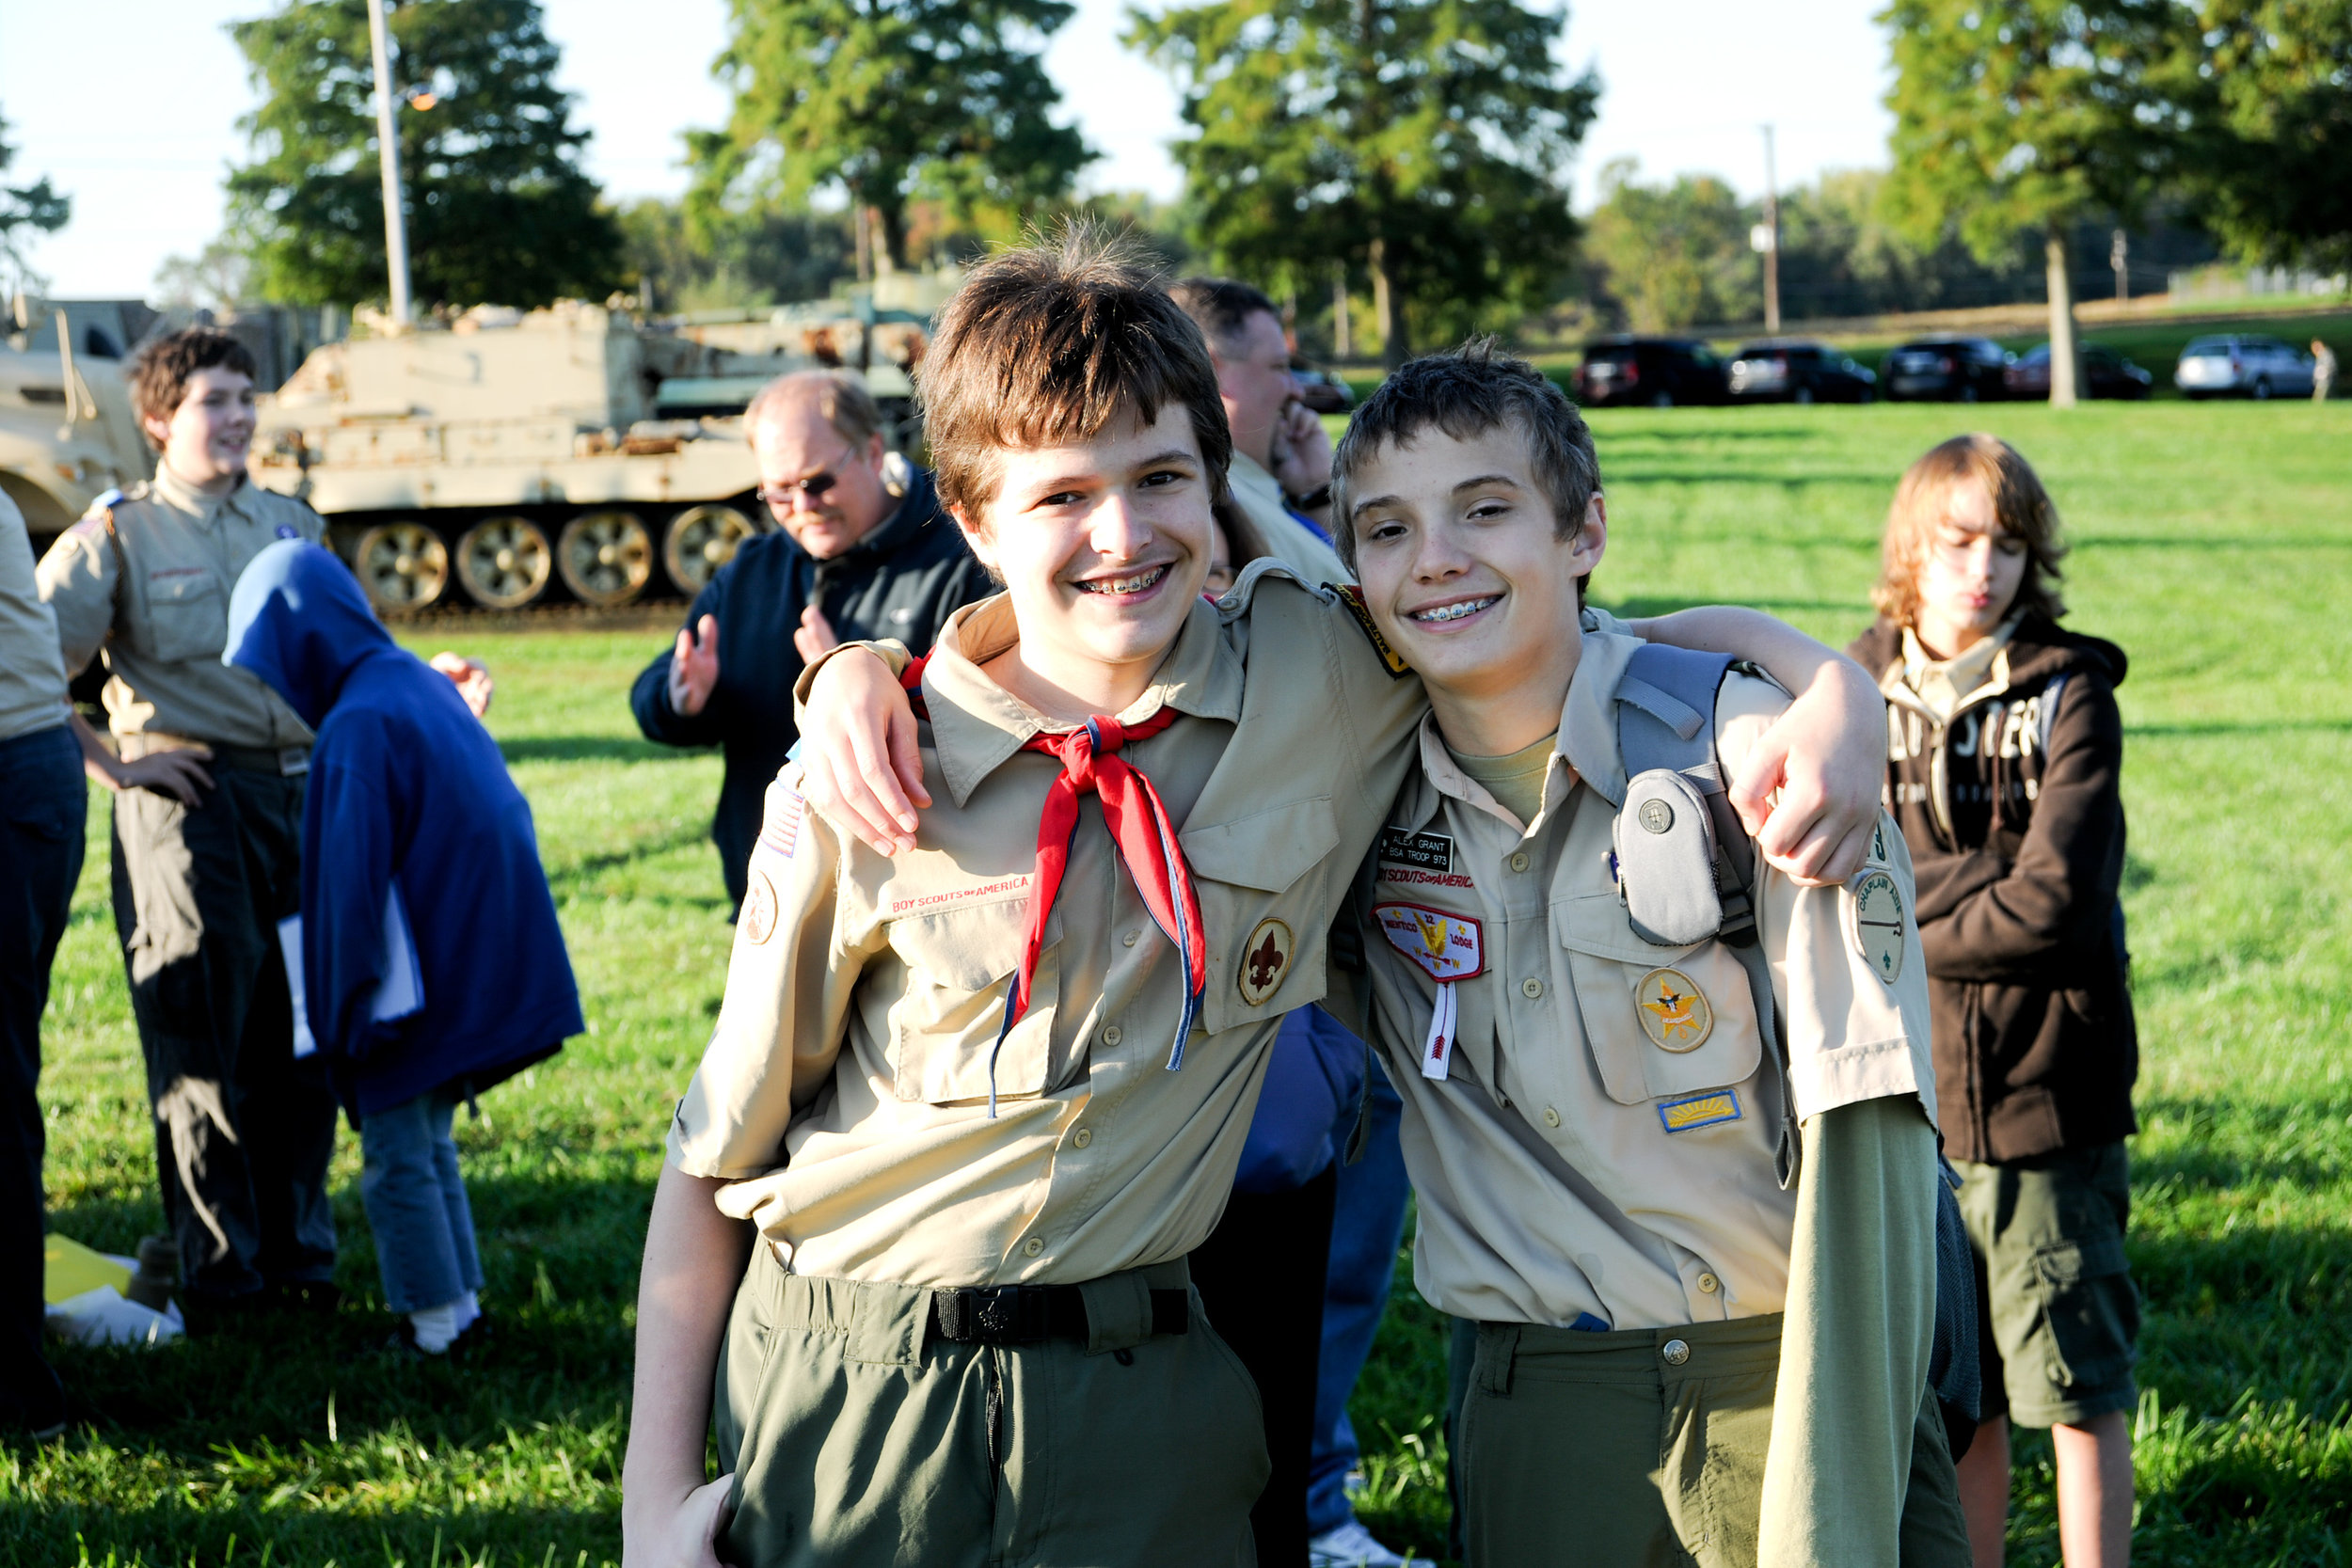 Maryland_Boy_Scouts_visit_Aberdeen_Proving_Ground,_October_2011.jpg